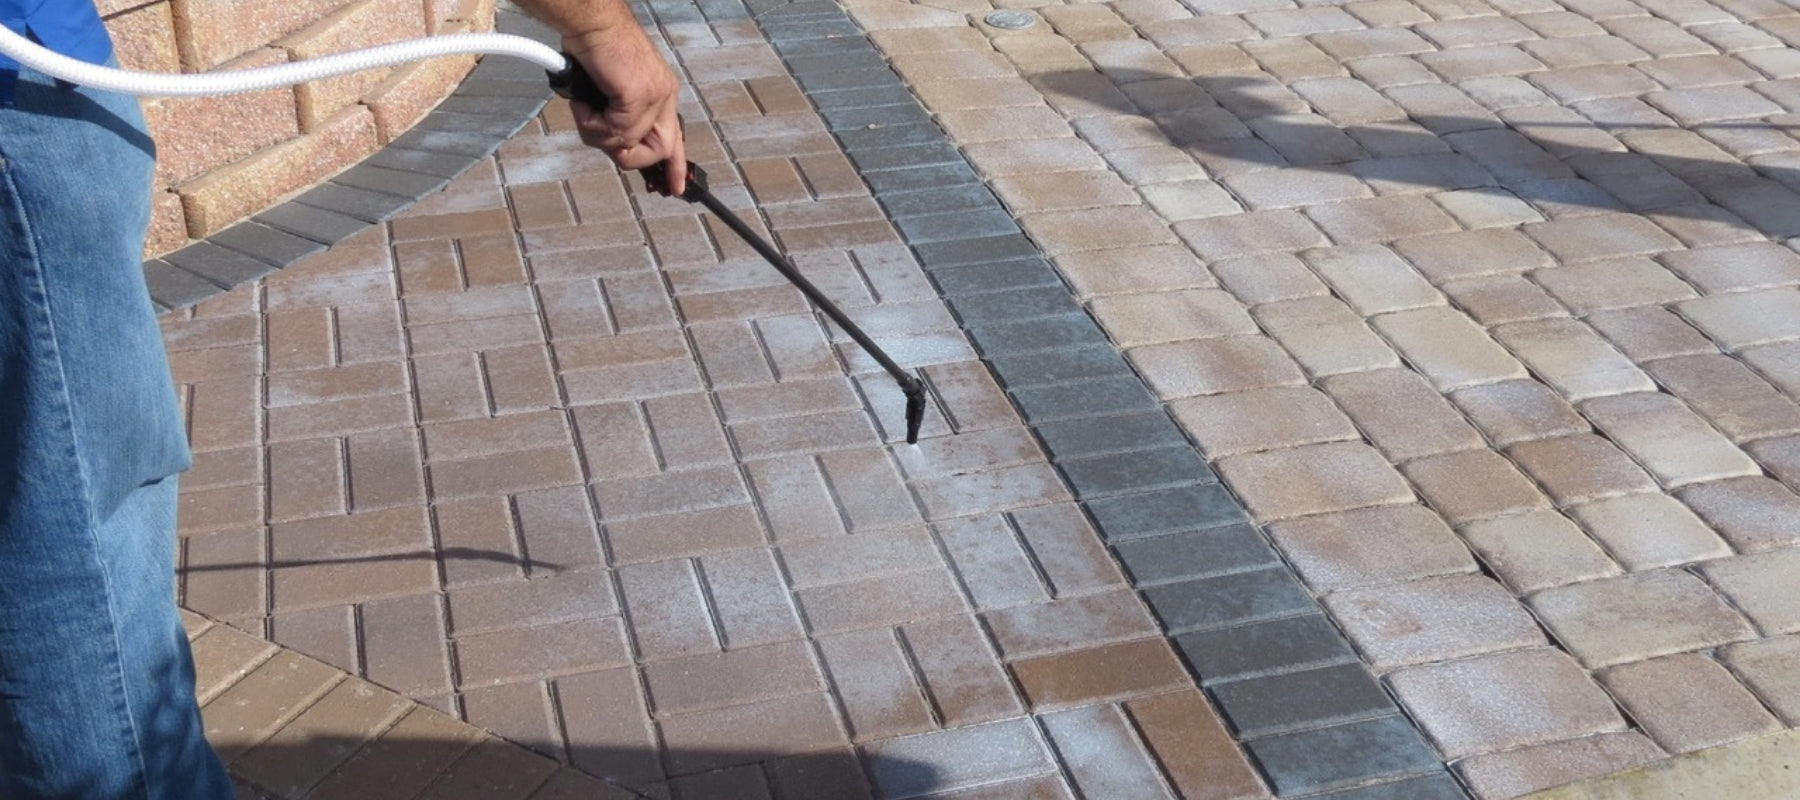 Why Seal Pavers – A Growth Business